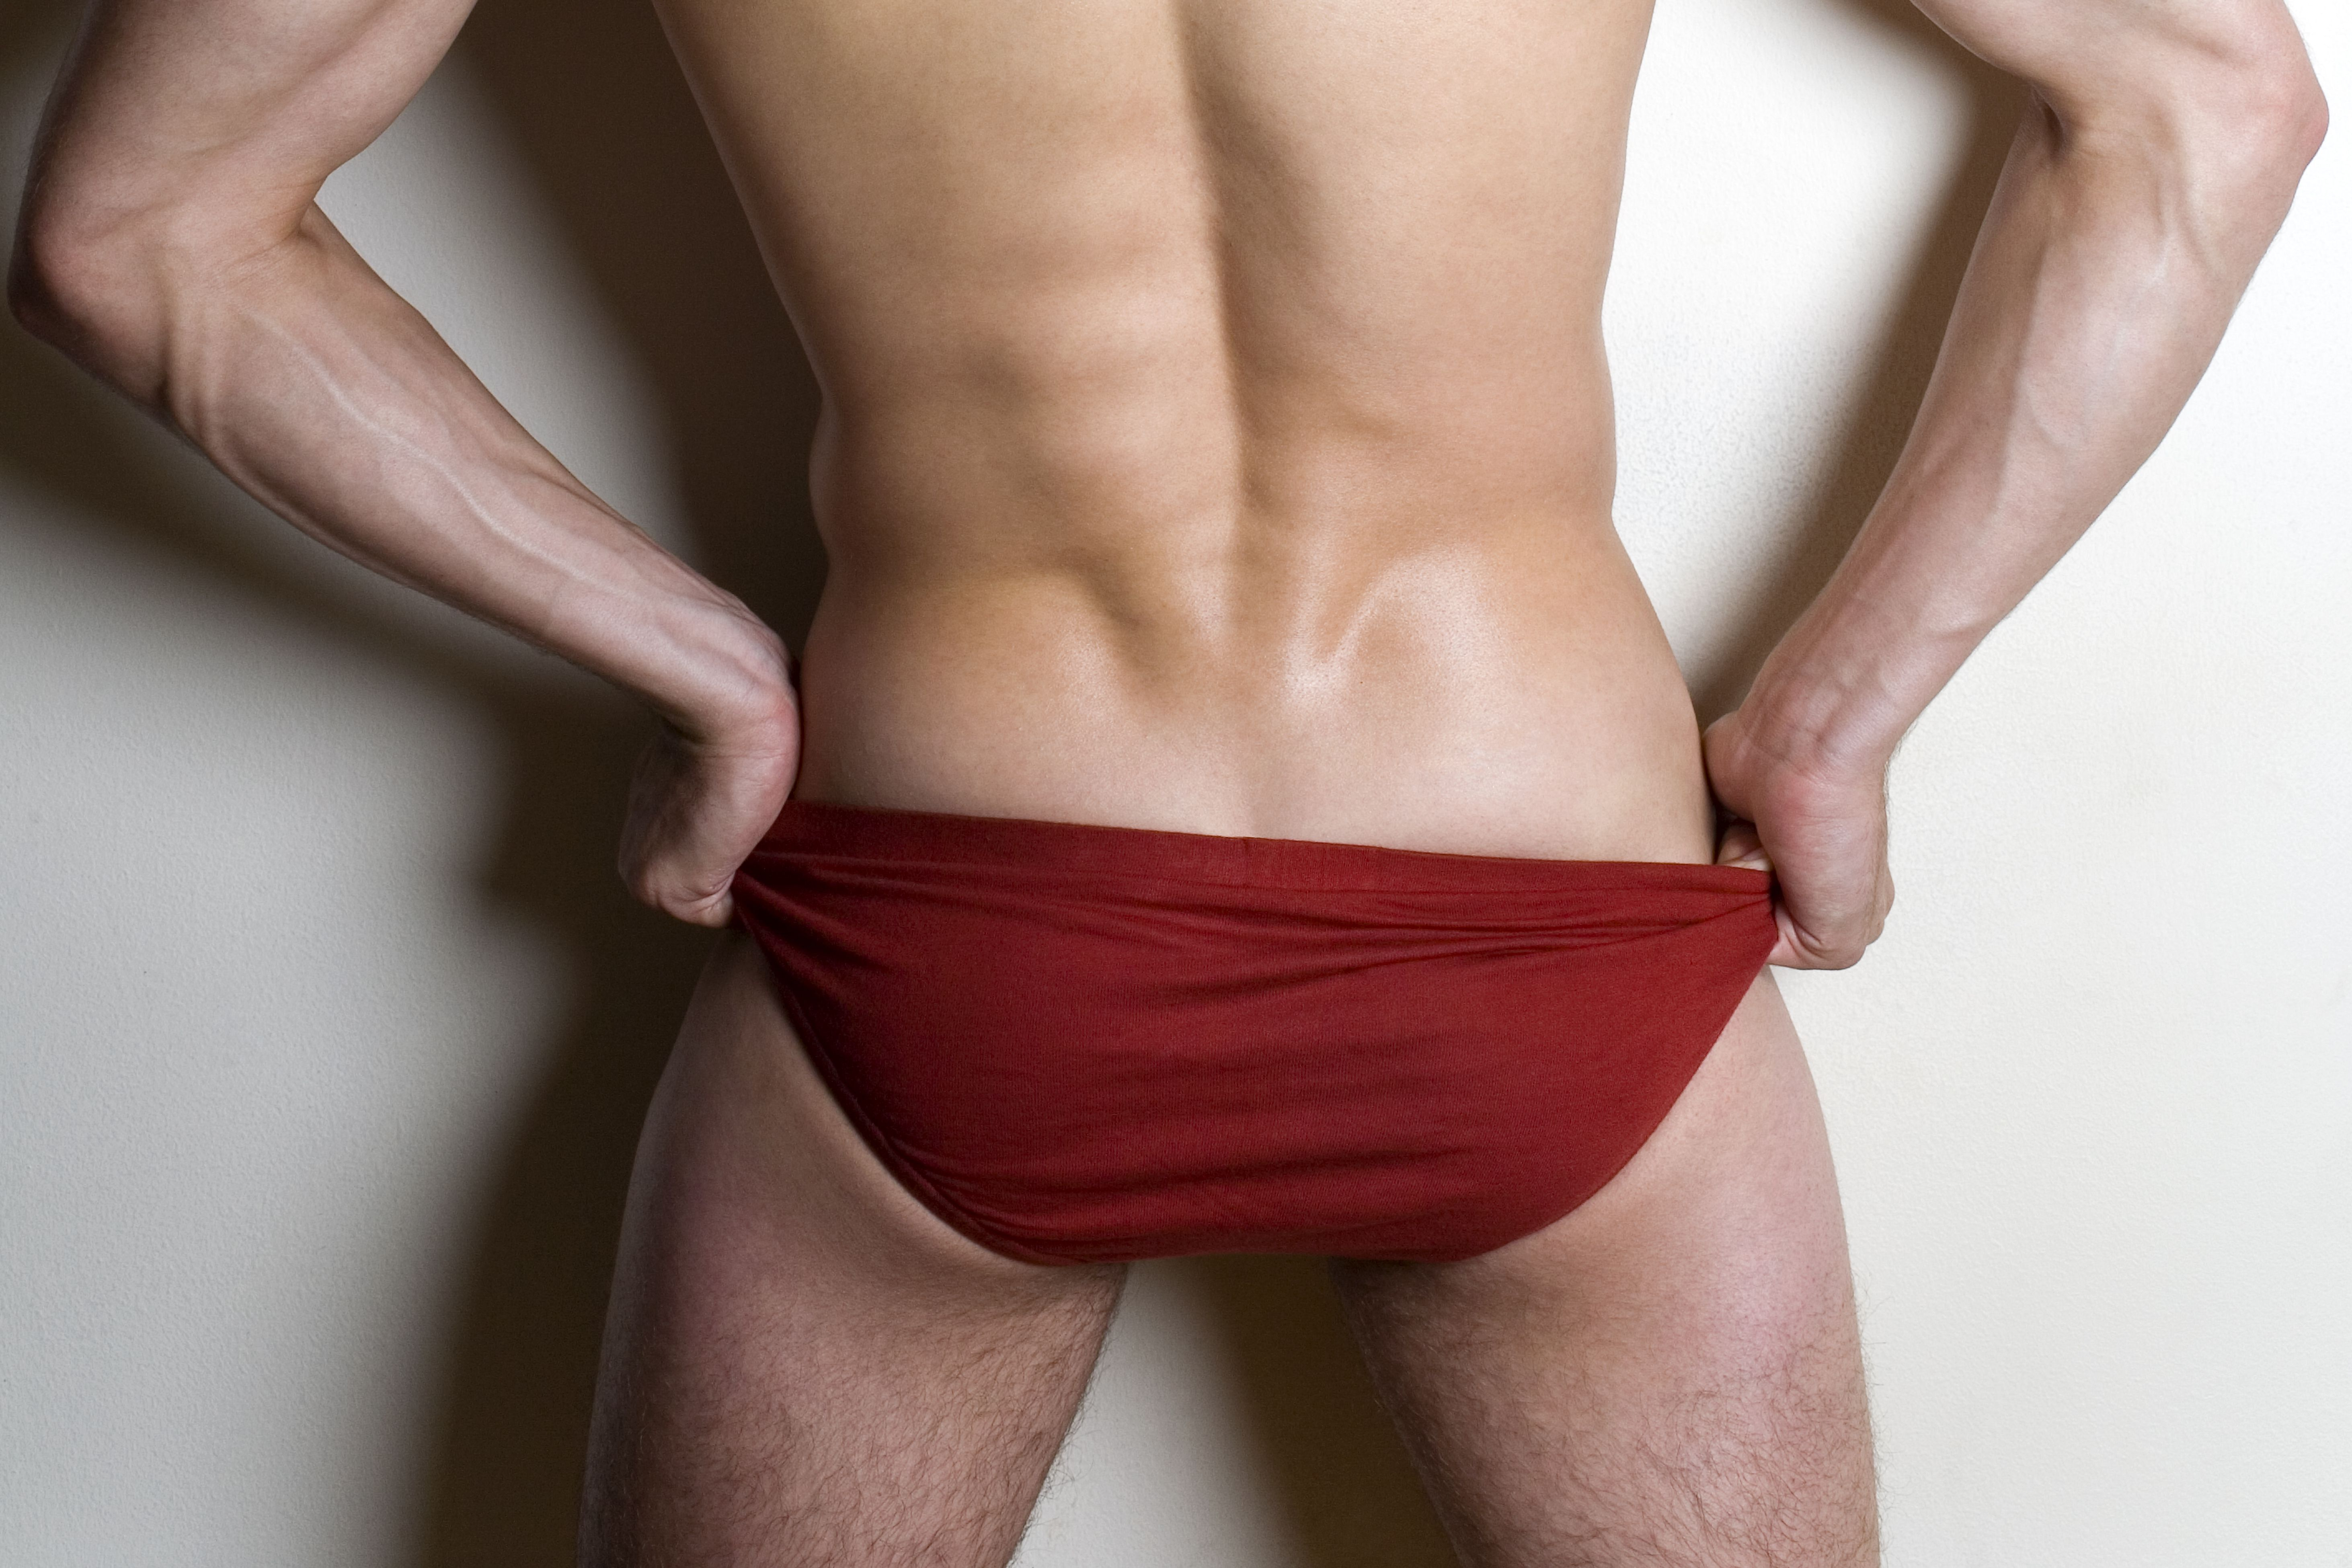 Close up of male buttocks in red underpants